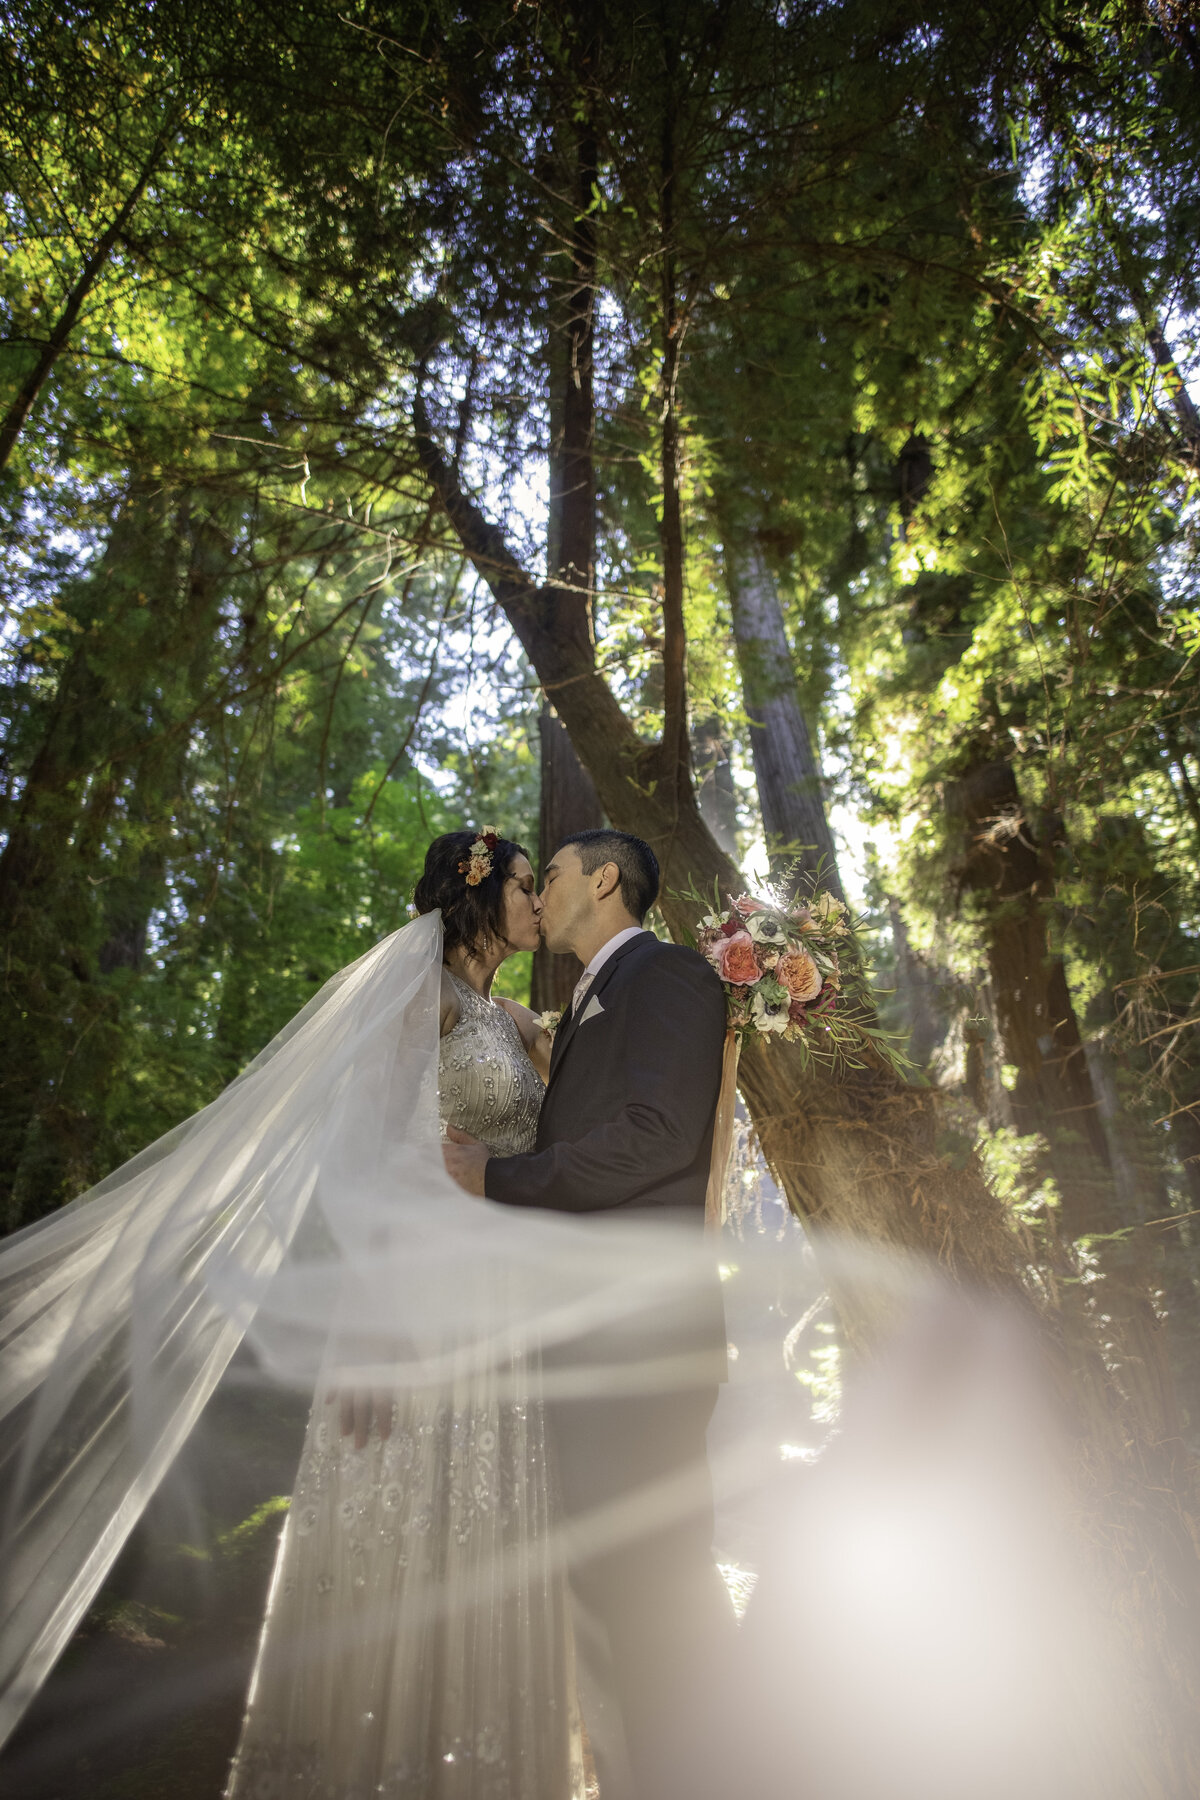 Redway-California-elopement-photographer-Parky's-Pics-Photography-redwoods-elopement-Avenue-of-the-Giants-Pepperwood-California-05.jpg